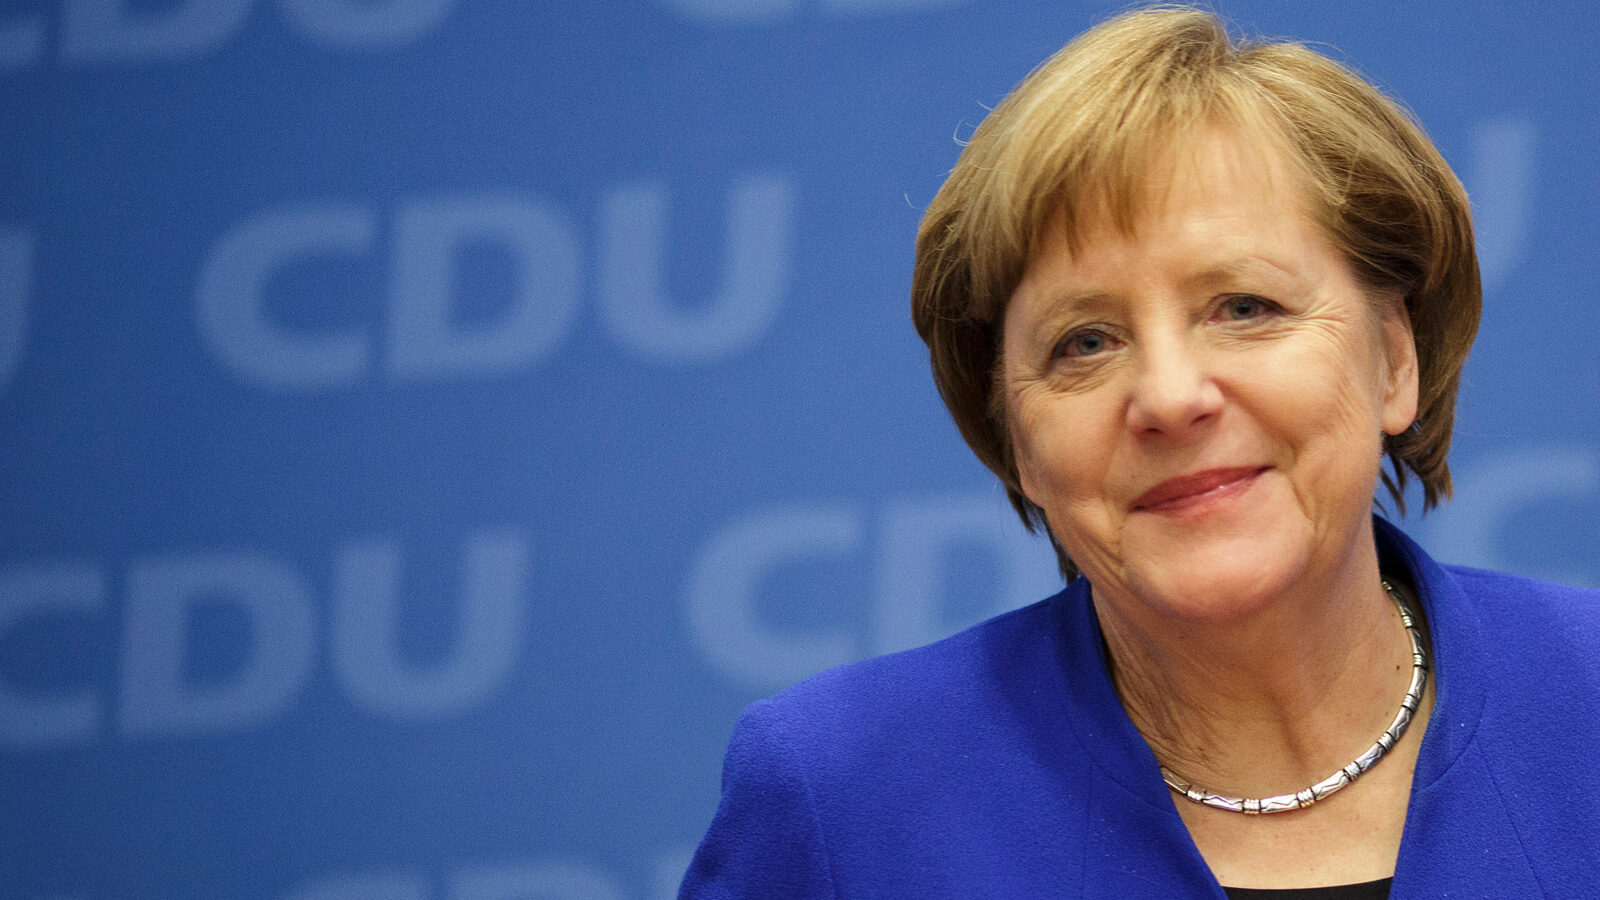 Merkel: the EU is seeking to enter into a trade deal with the UK, but not at any price